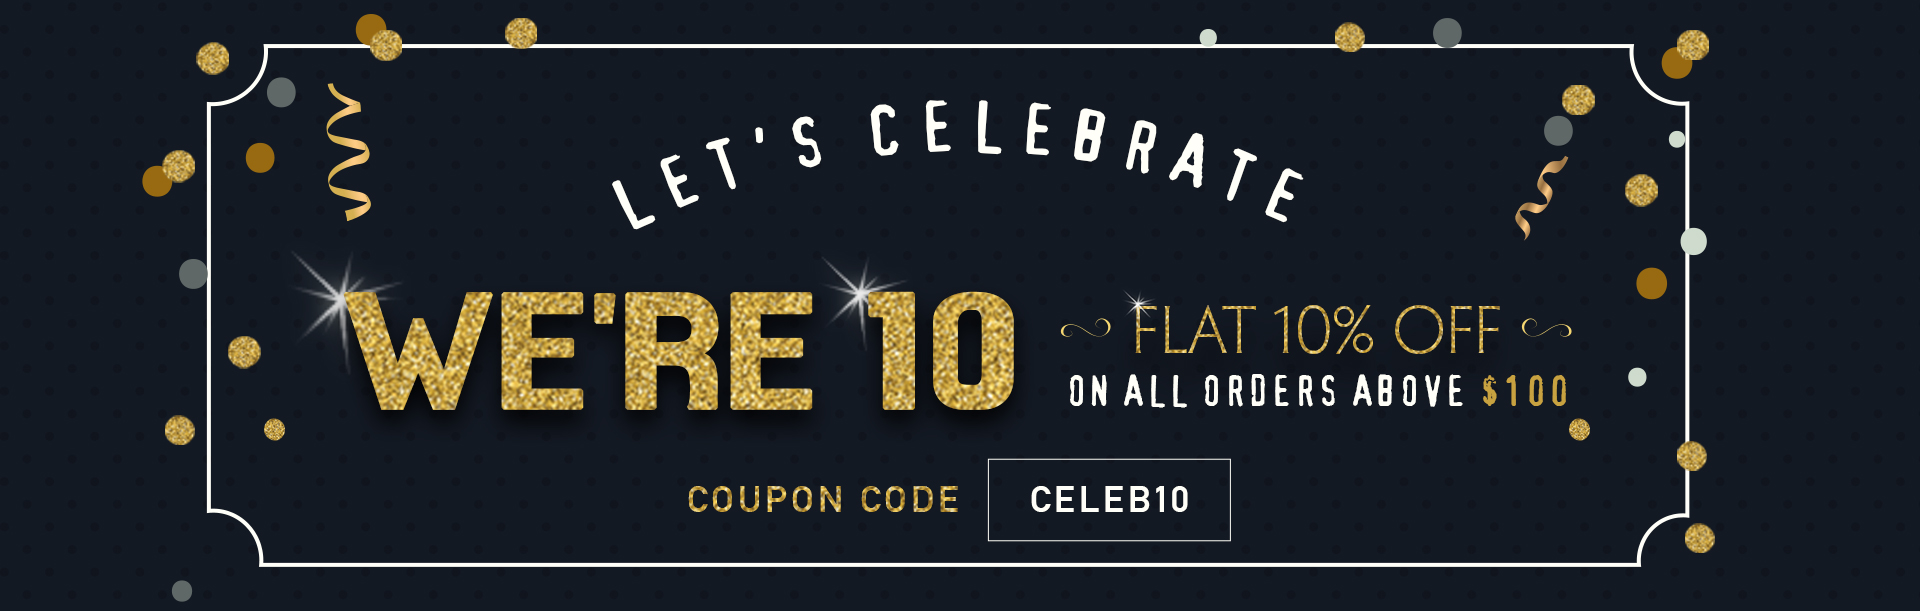 Flat 10% Off on All Orders